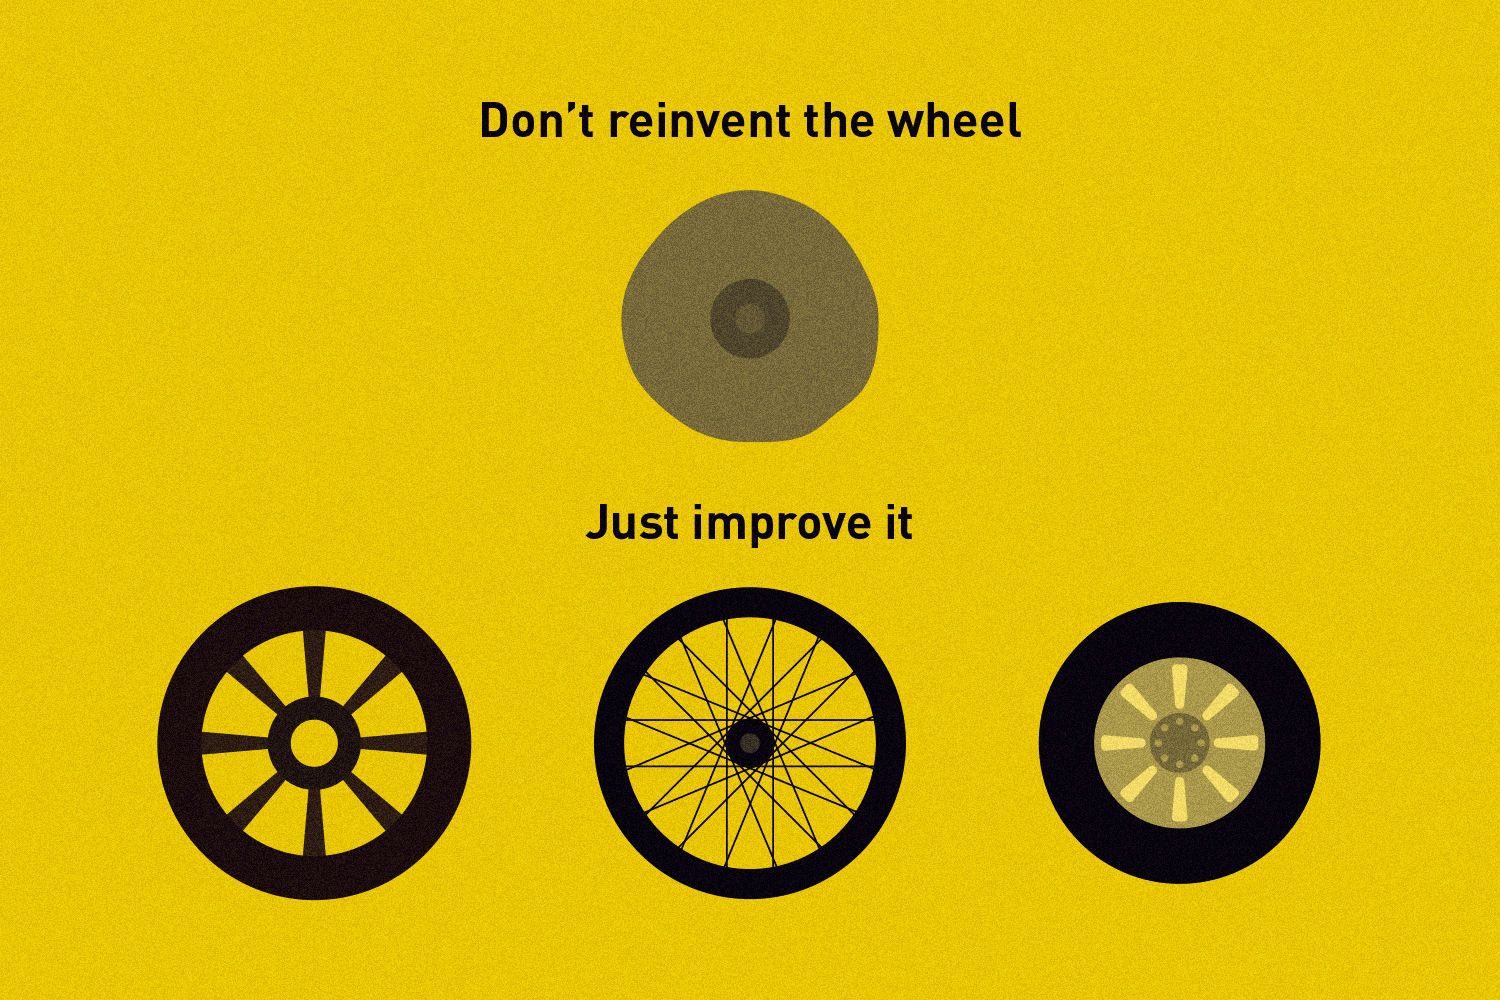 App design isn't about reinventing the wheel - it's about redesigning it